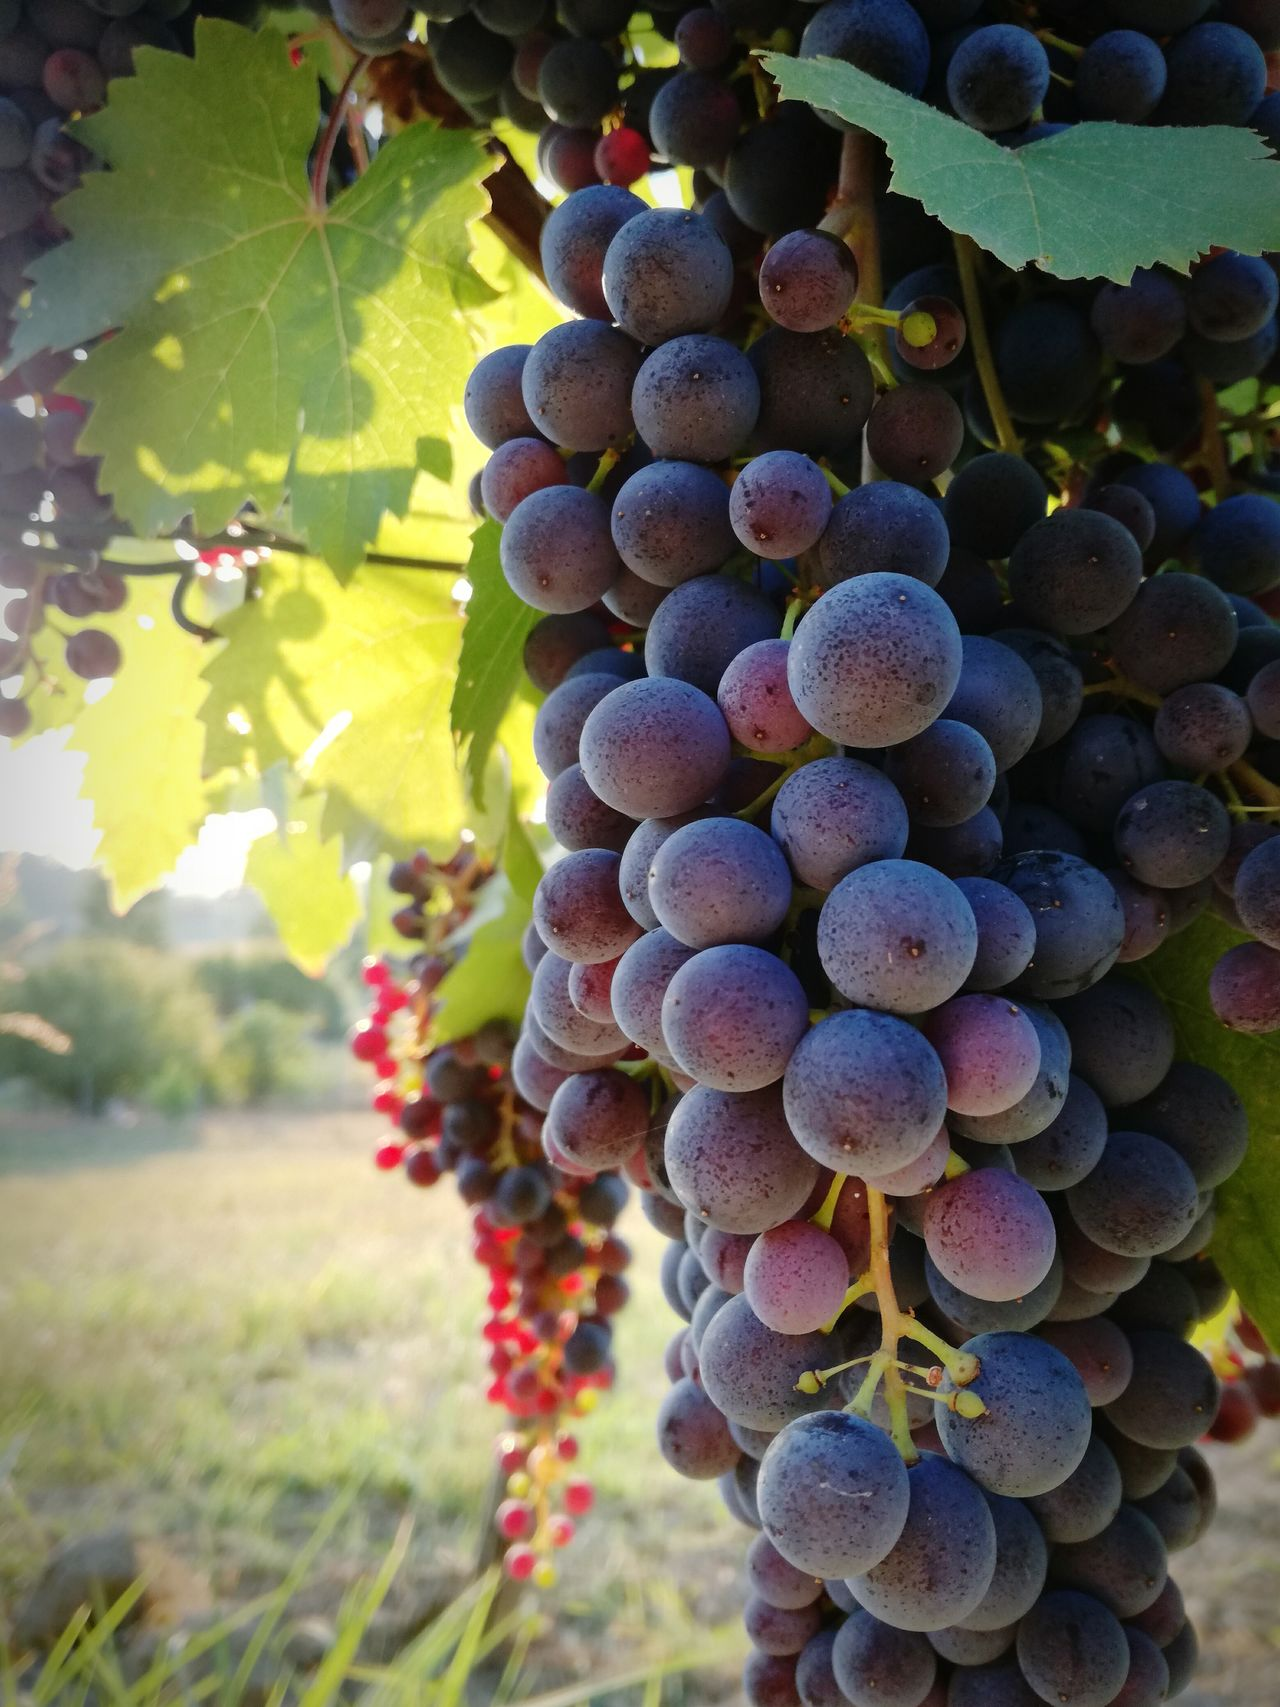 Fruit Grape Winemaking Vine Selective Focus Nature GooddayWine Wine Tasting Wine Time Sunset Beautifulnature Moment Eyemphotography Evening View Instalike Instanature Naturelovers Vigna Grappolo Vendemmia